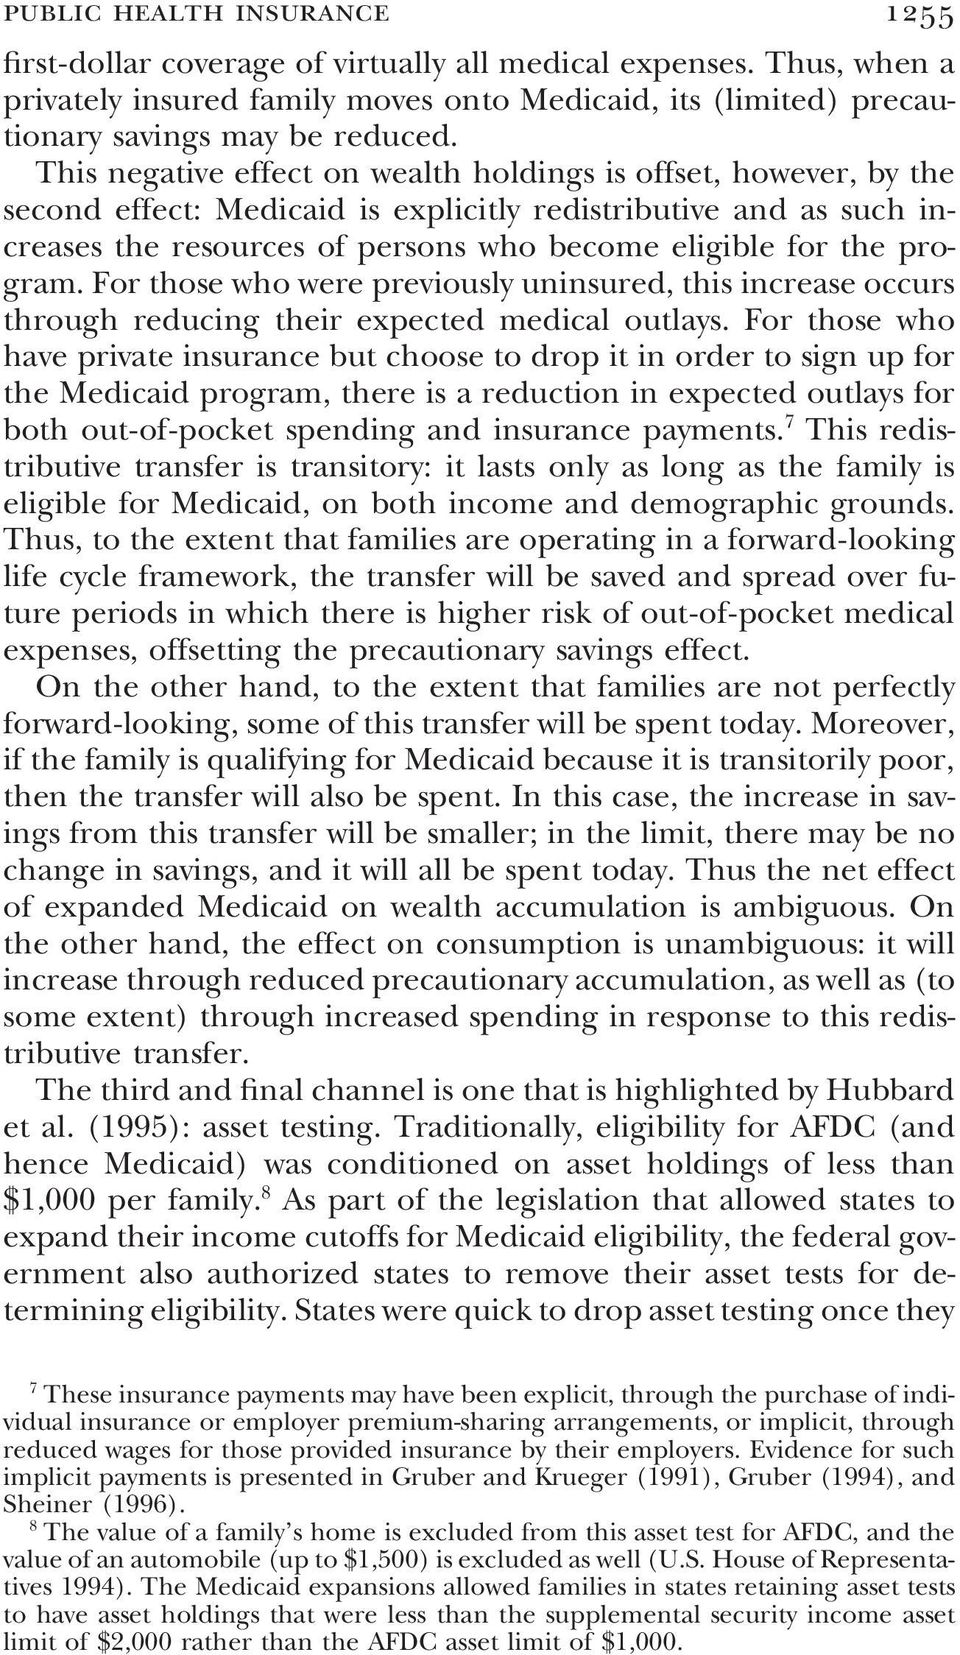 program. For those who were previously uninsured, this increase occurs through reducing their expected medical outlays.